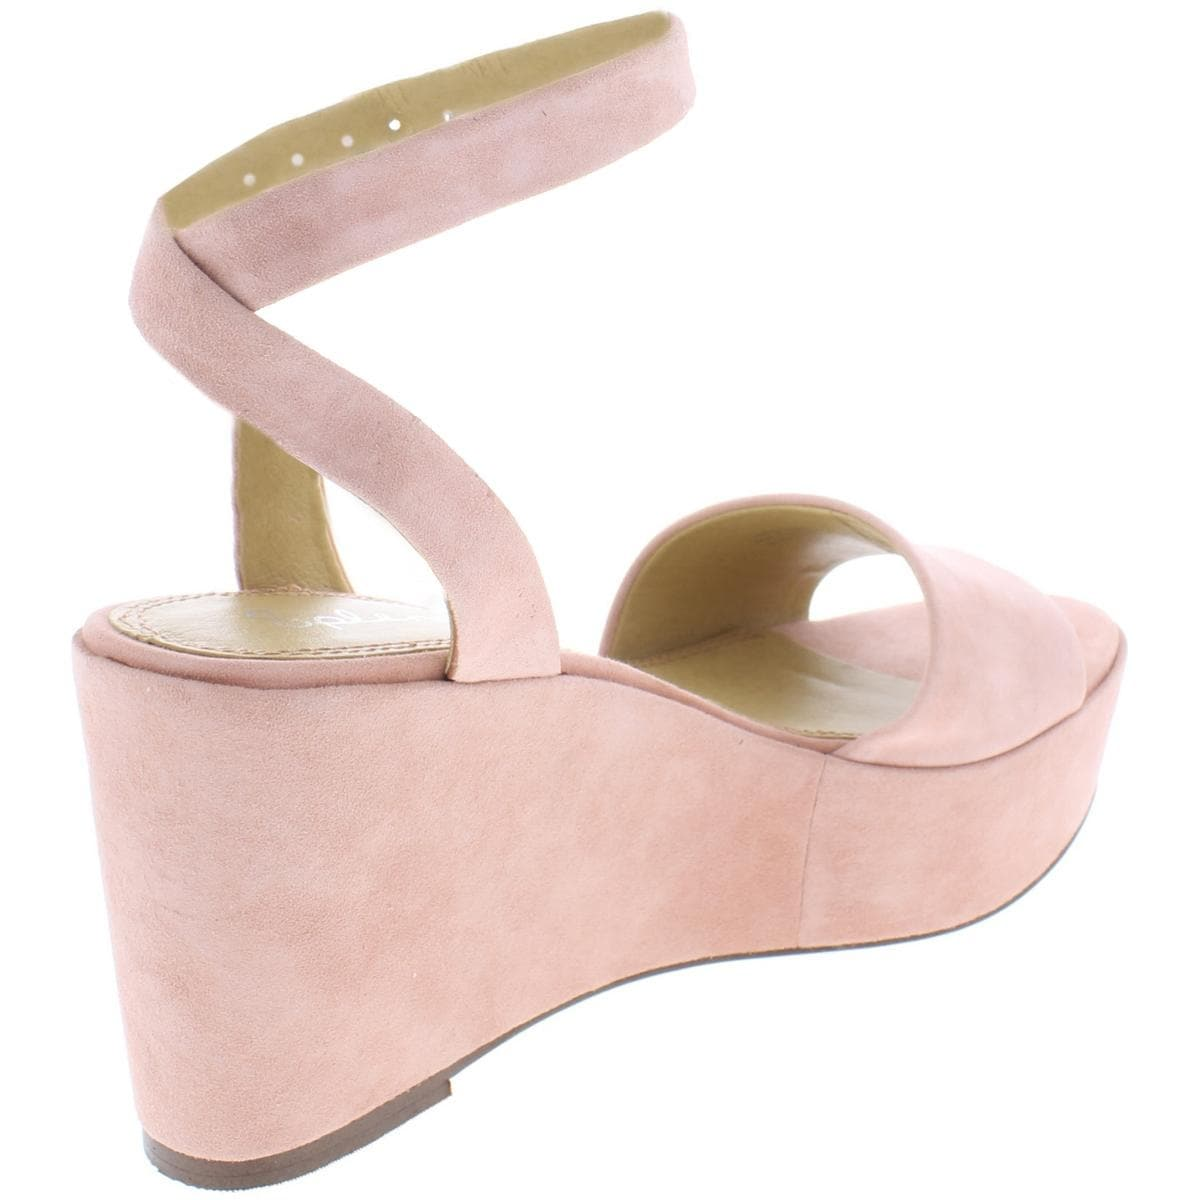 f8e6ae29e18 Shop Splendid Womens Felix Platform Sandals Suede Wedge - On Sale - Free  Shipping Today - Overstock - 26879646